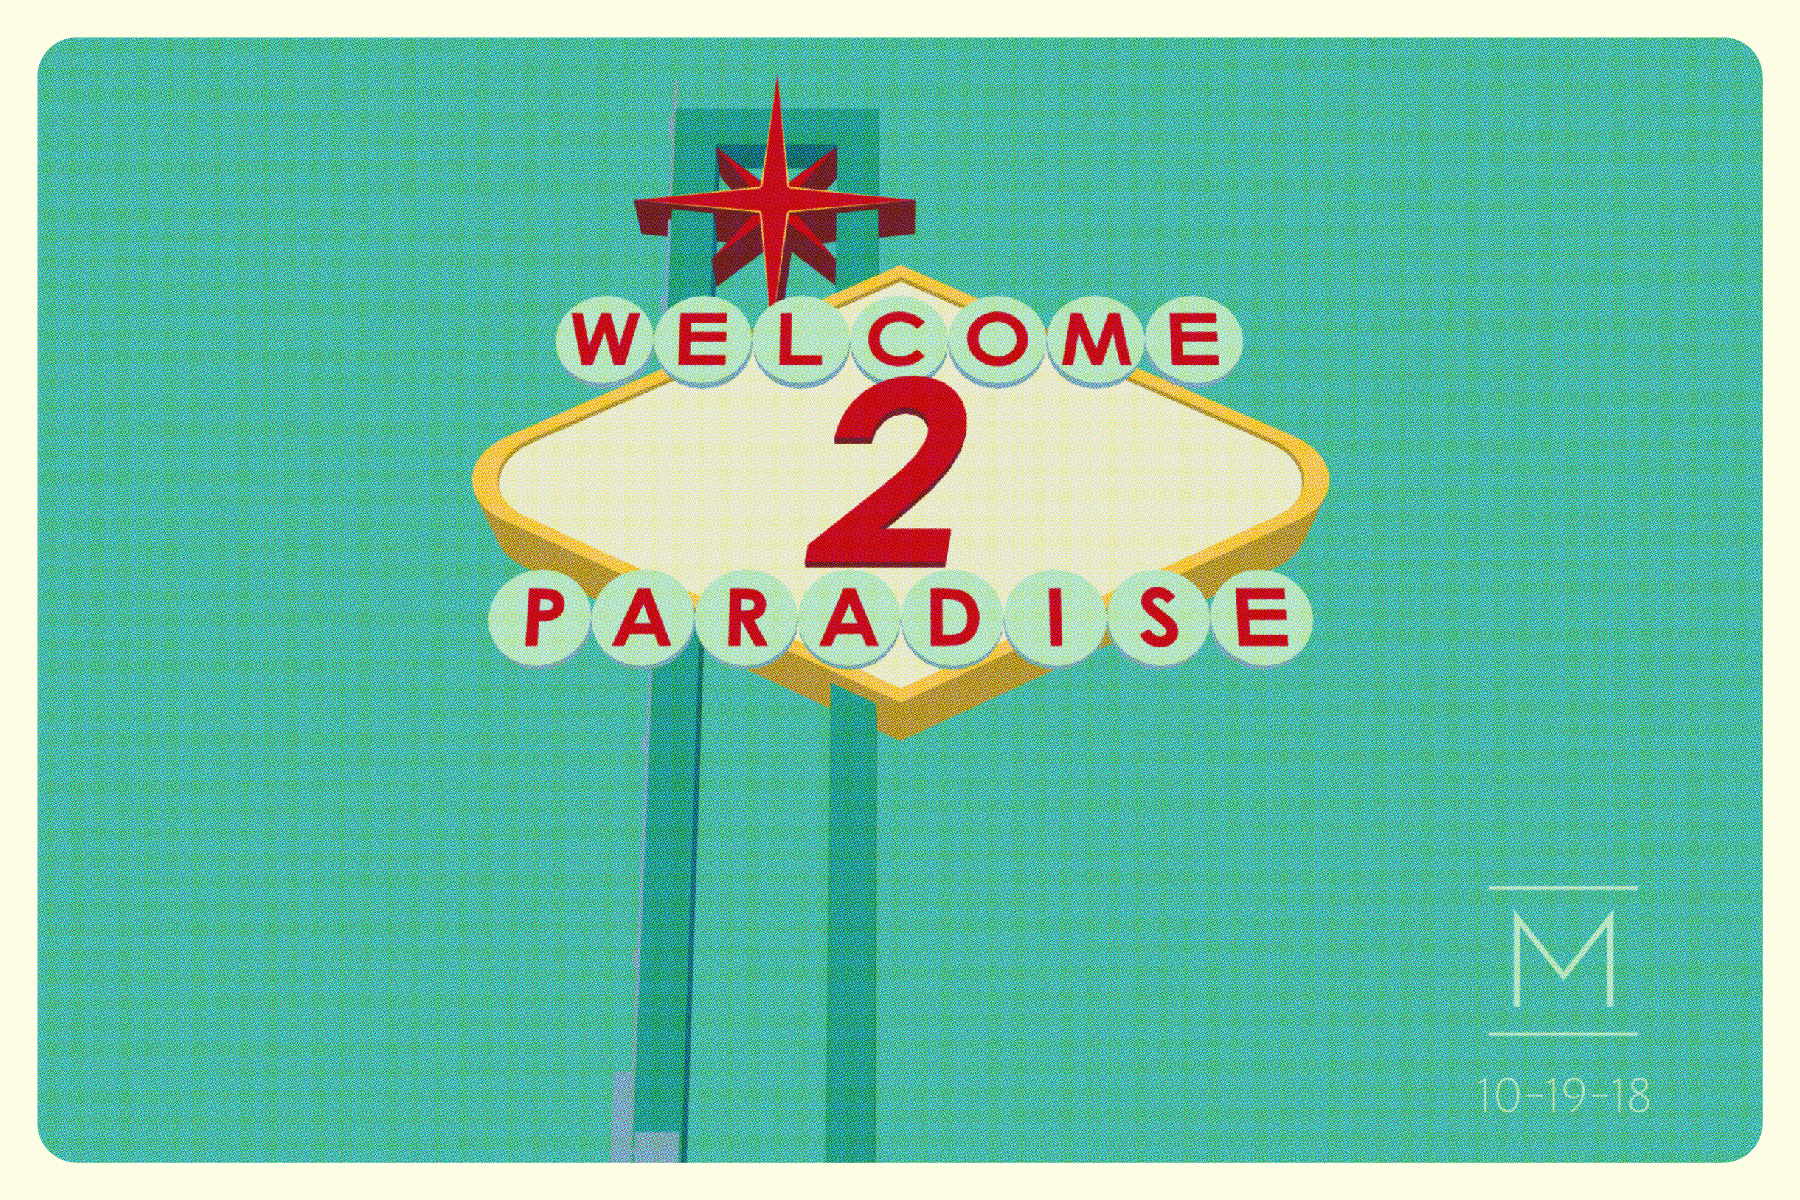 - Welcome 2 Paradise presents a selection of meticulously executed paintings that employ imagery from the November 2017 Las Vegas shooting to juxtapose the visual and emotional and engage the viewer in a larger narrative.